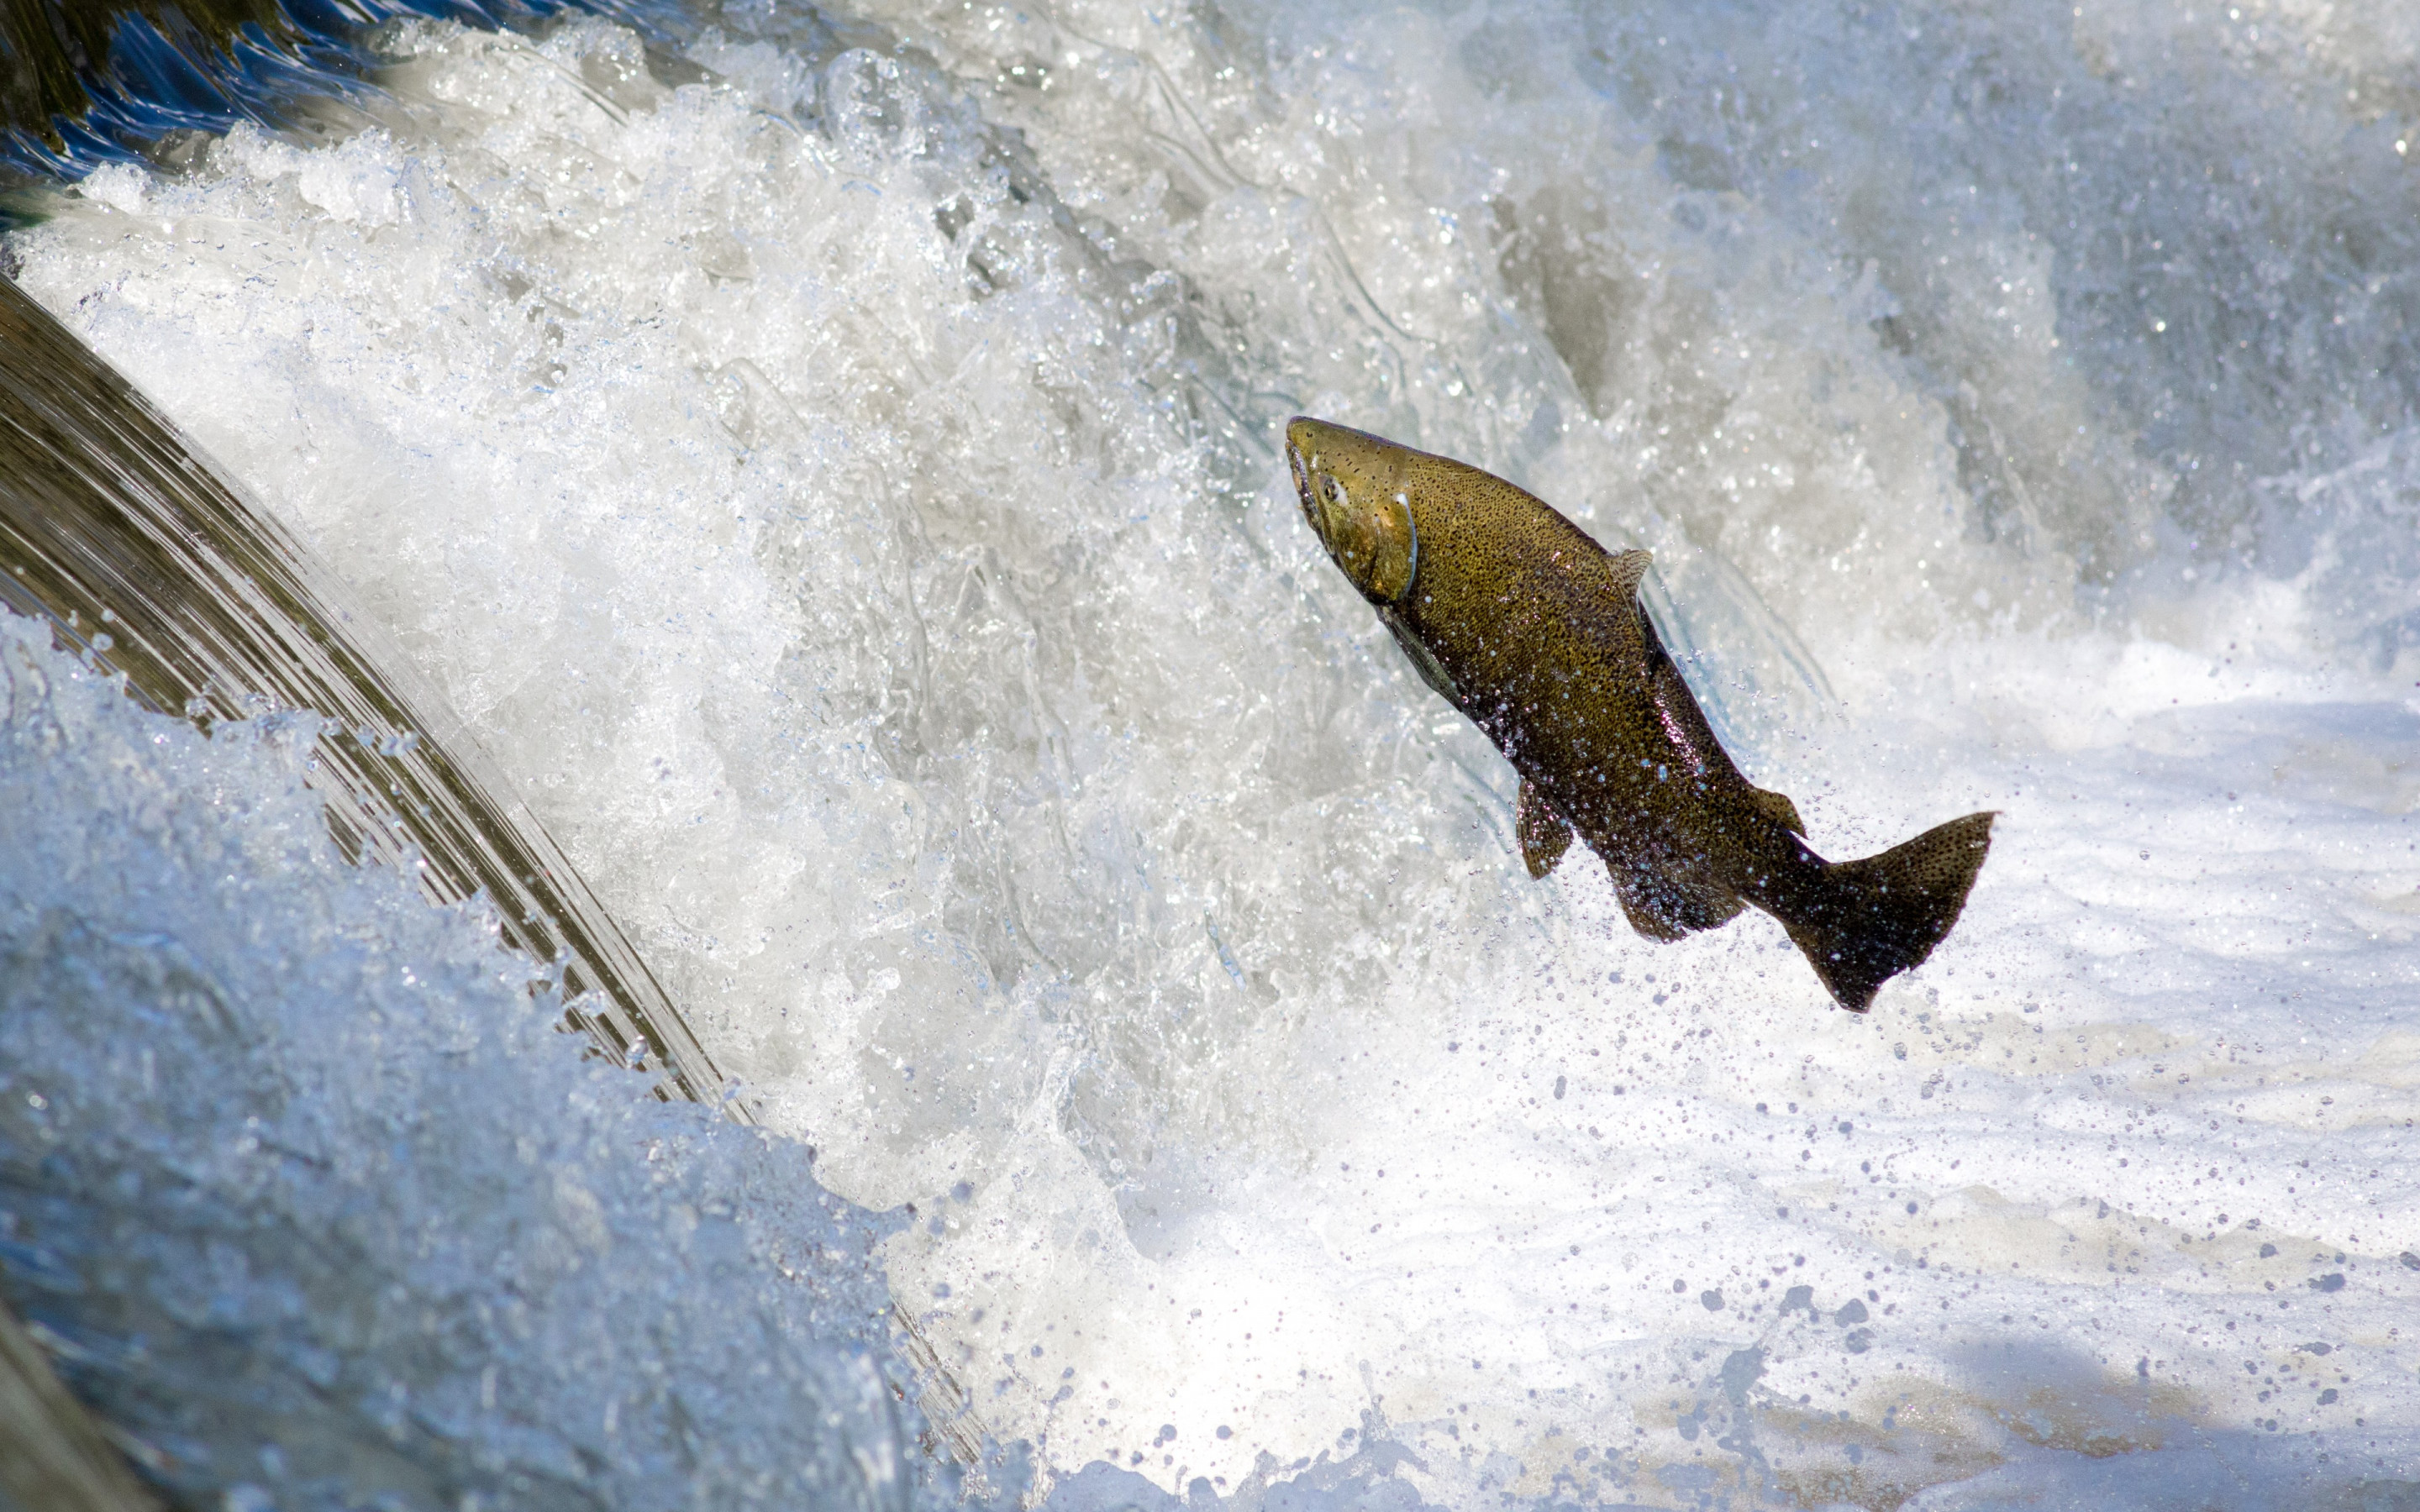 Salmon jumping over waterfall wallpaper 2880x1800